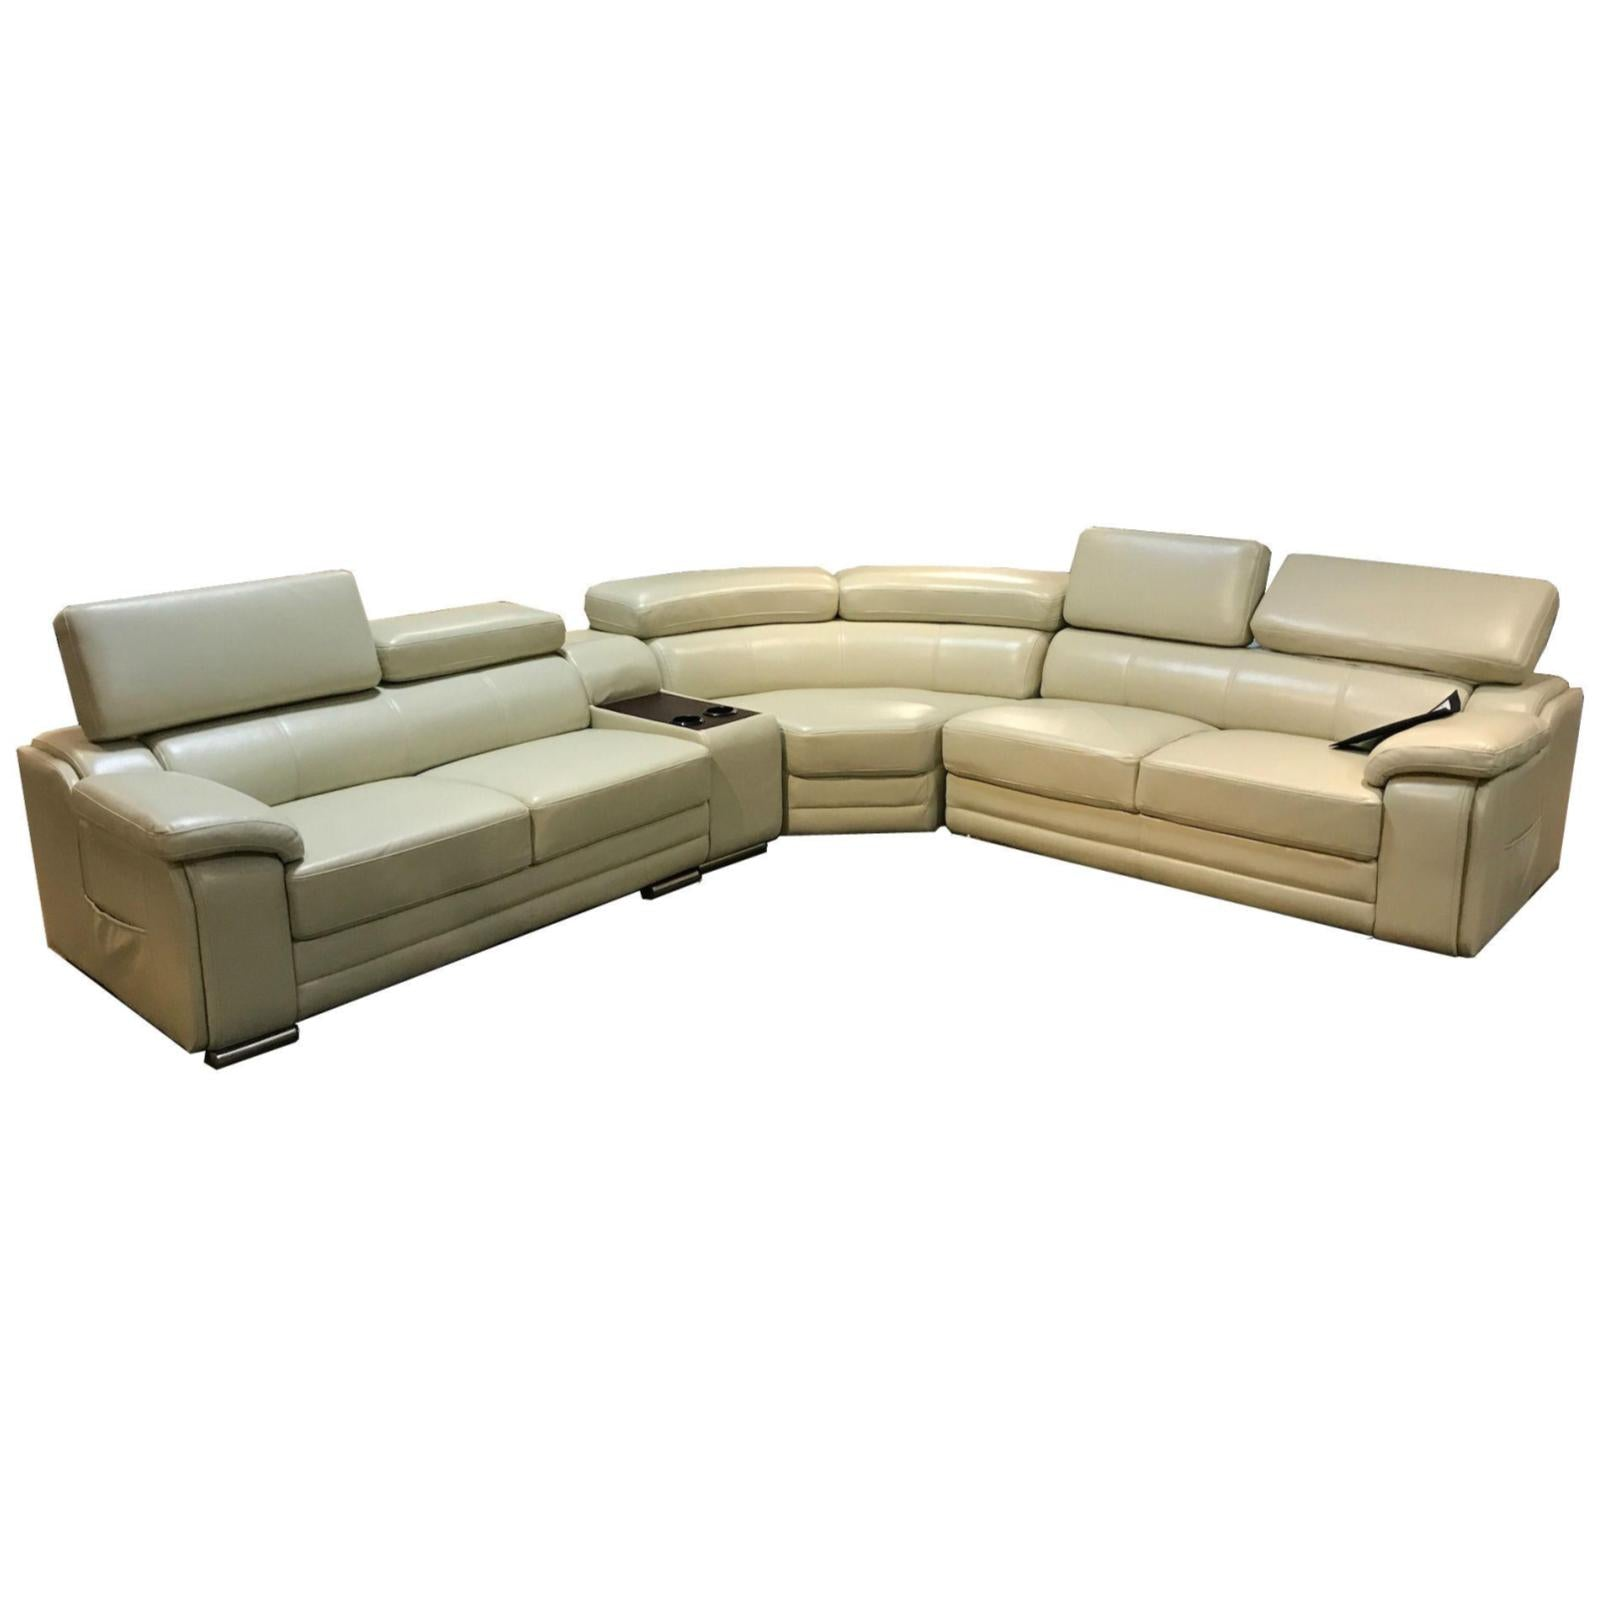 Pleasing Santana Cream Sectional Andrewgaddart Wooden Chair Designs For Living Room Andrewgaddartcom